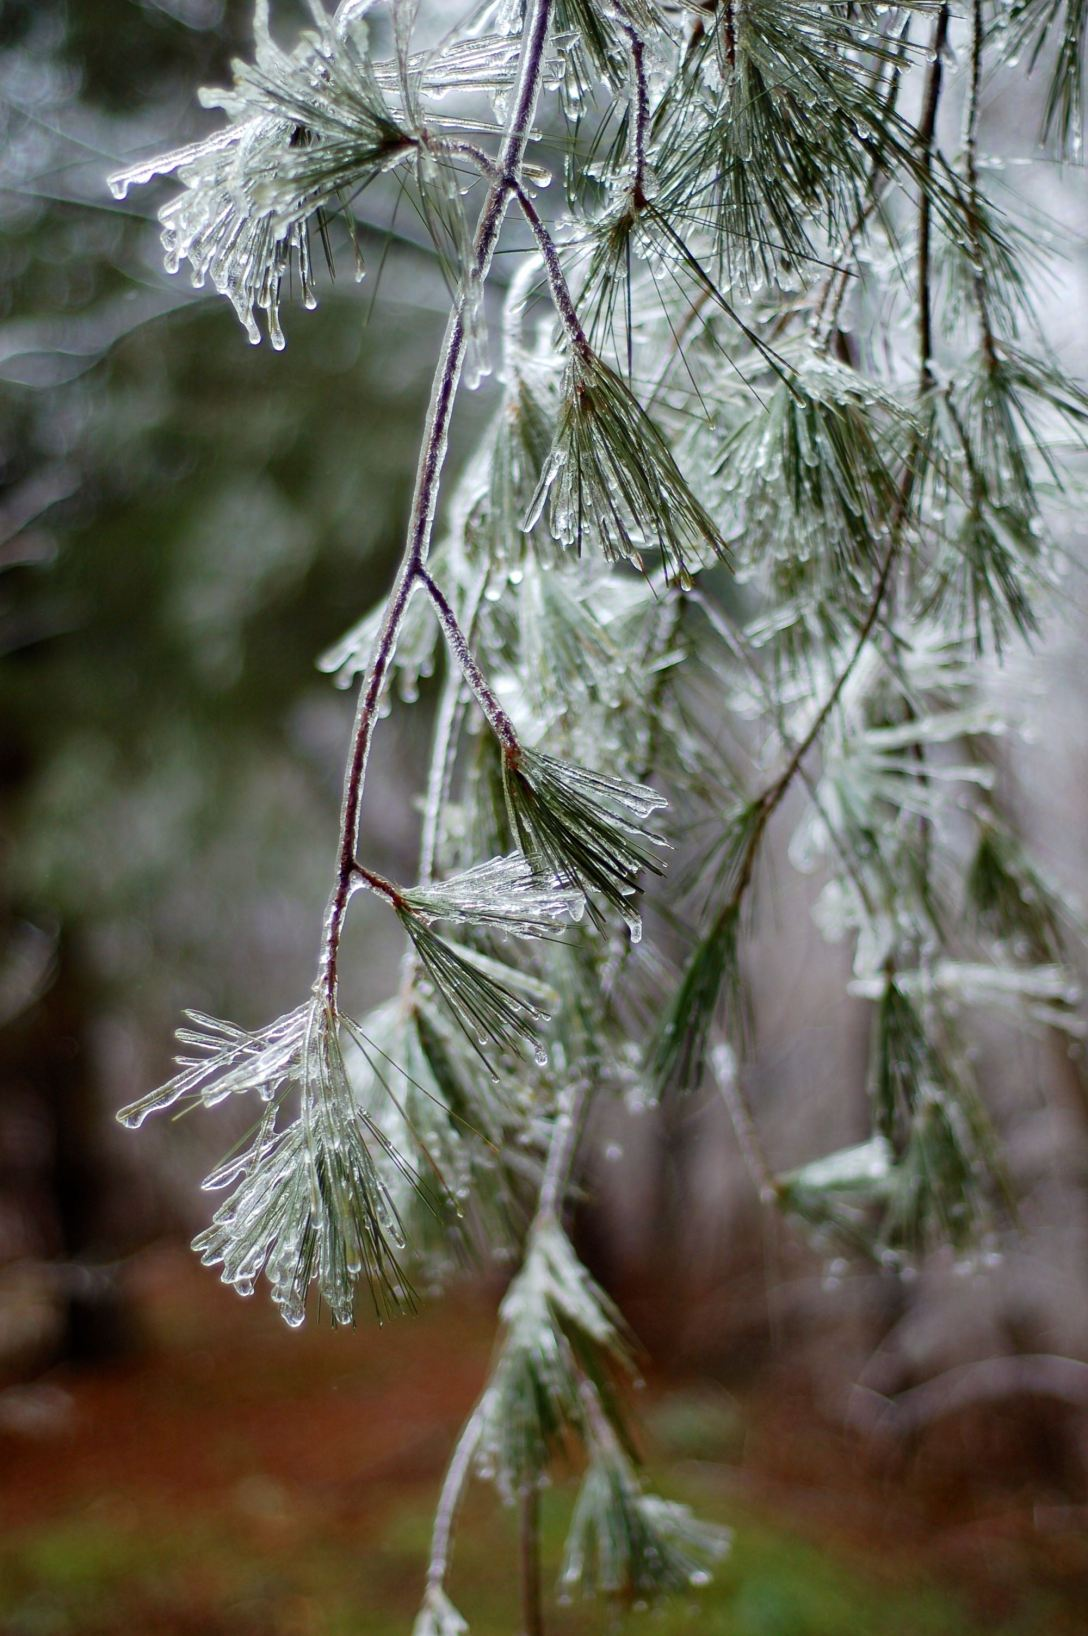 Iced pine branches by Andrea Badgley on Butterfly Mind